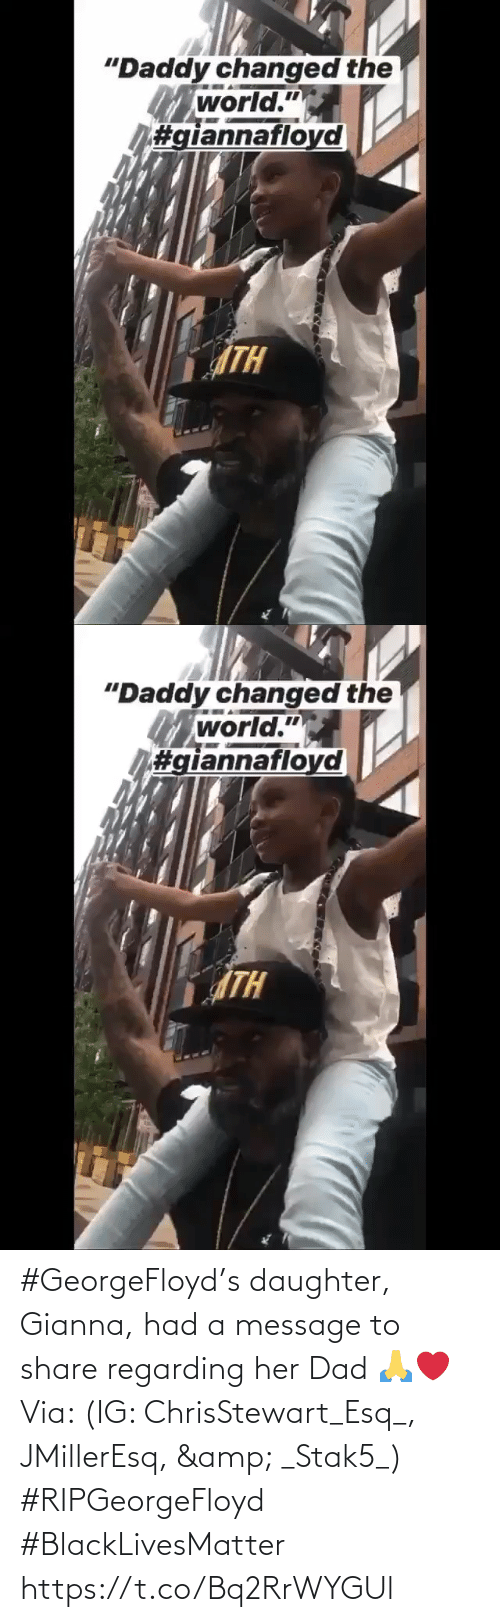 message: #GeorgeFloyd's daughter, Gianna, had a message to share regarding her Dad 🙏❤️ Via: (IG: ChrisStewart_Esq_, JMillerEsq, & _Stak5_) #RIPGeorgeFloyd #BlackLivesMatter https://t.co/Bq2RrWYGUl